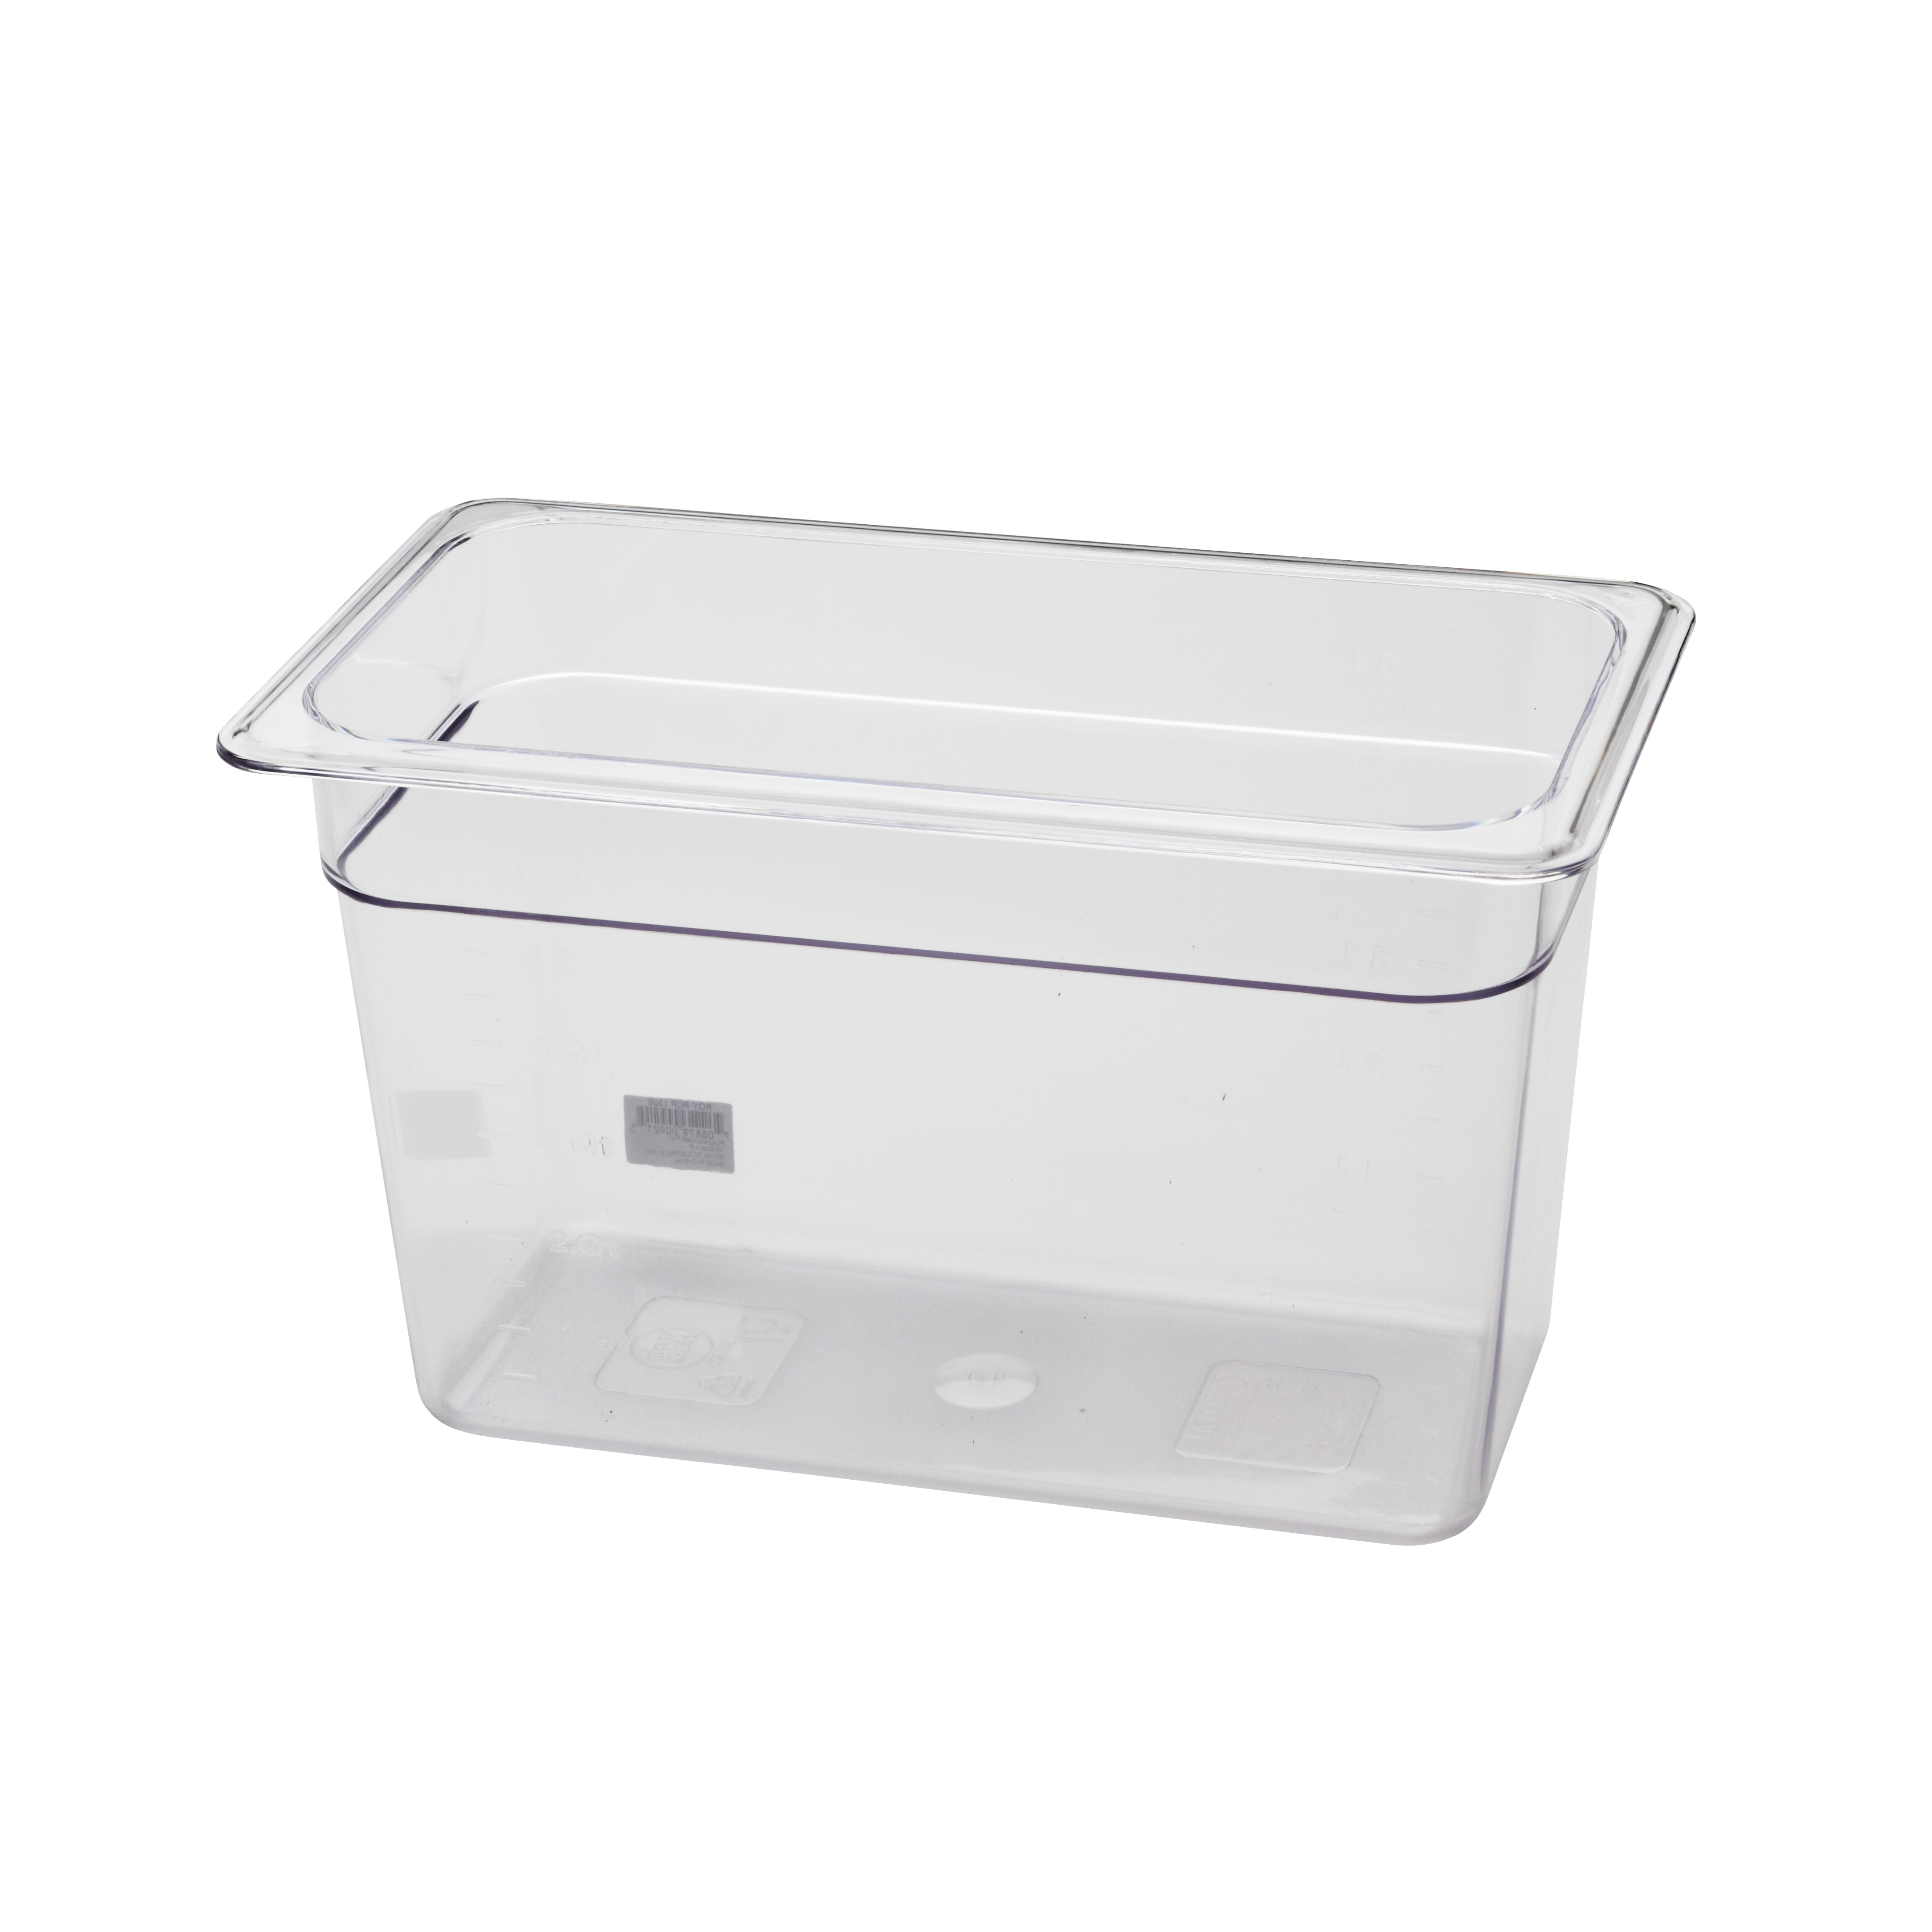 Royal Industries ROY PCP 1308 food pan, plastic